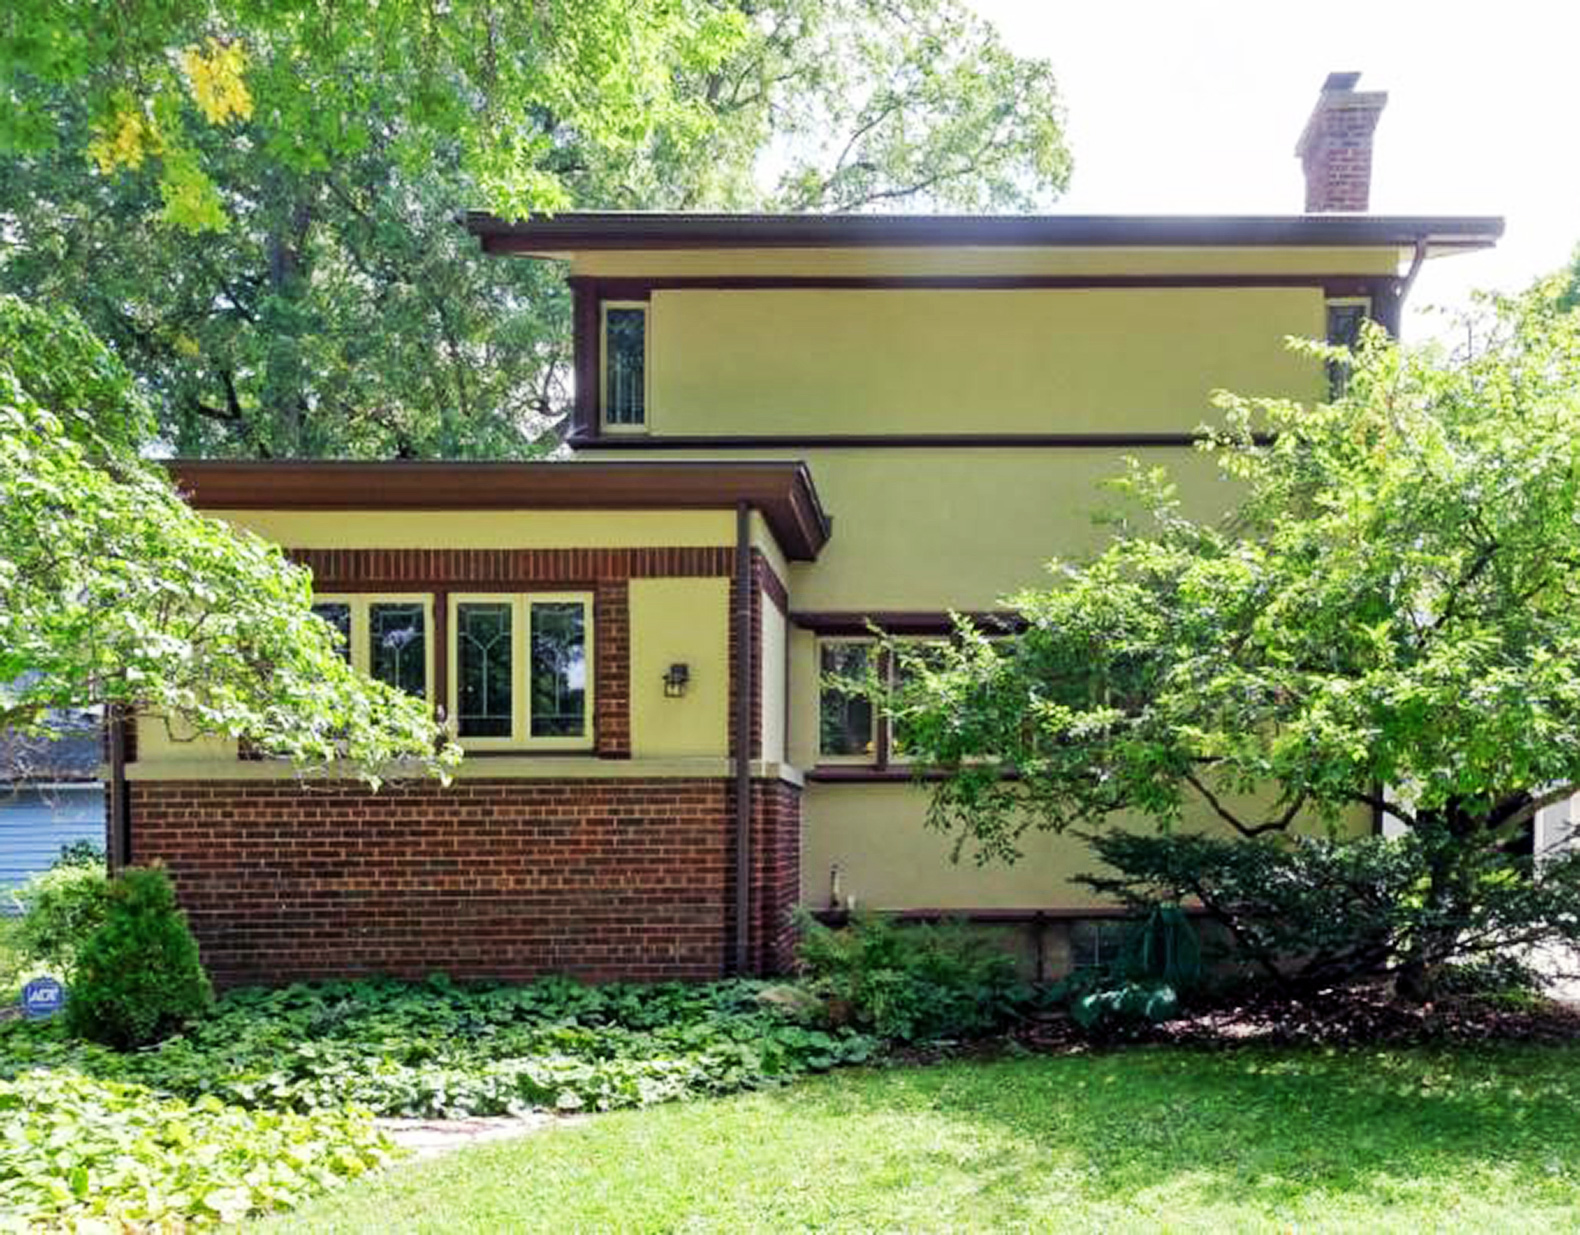 frank lloyd wright inhabitat green design innovation woman pays 100 000 for a home and then discovers it was designed by frank lloyd wright